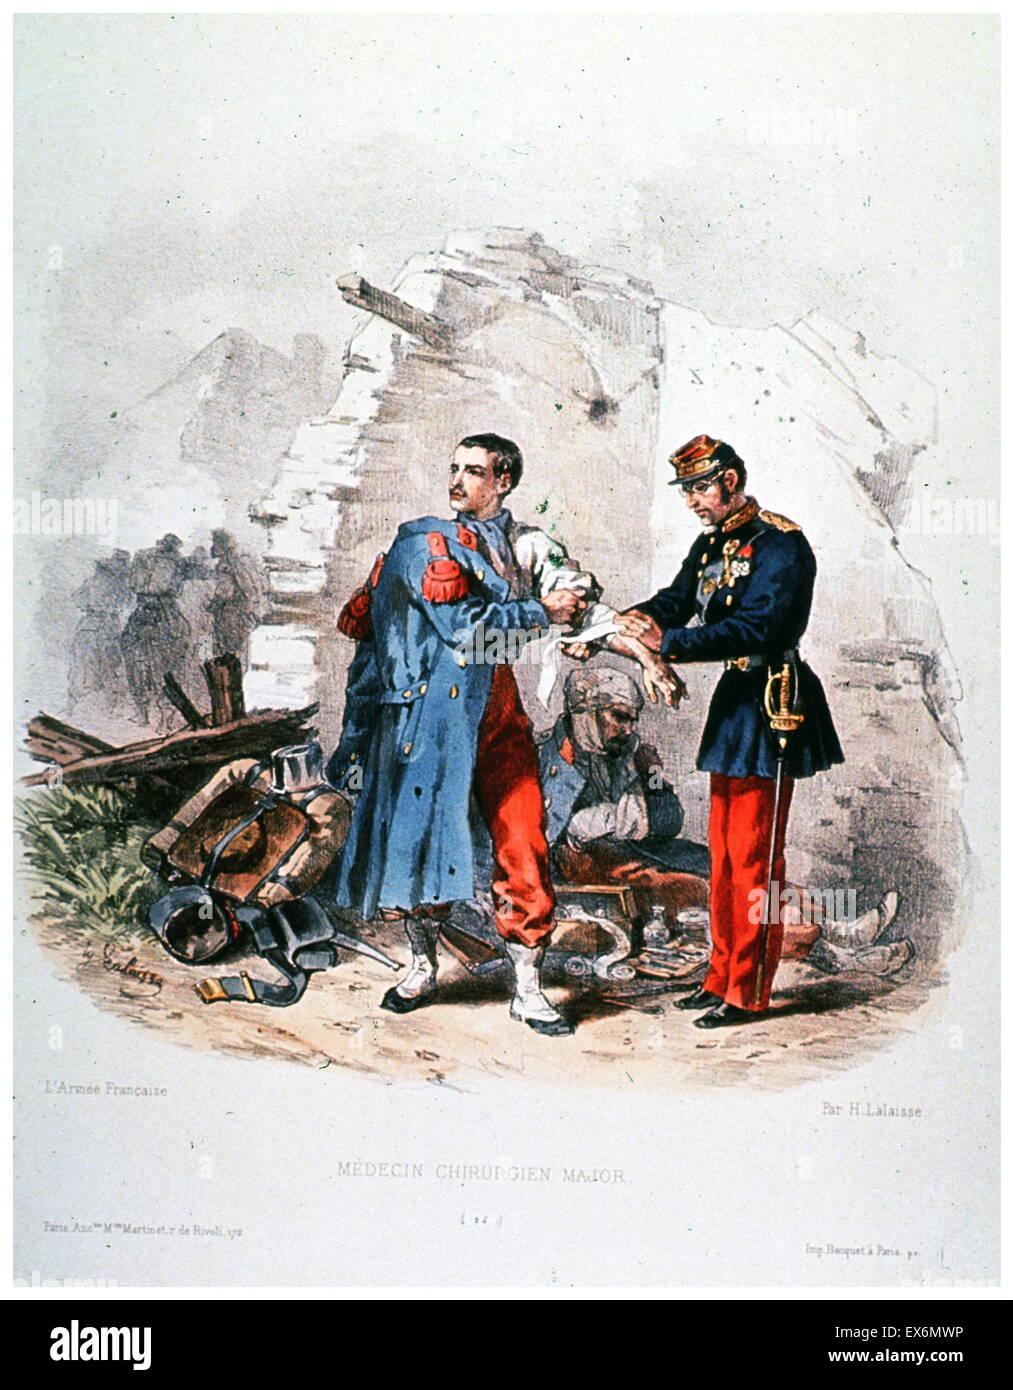 print, entitled 'Médecin Chirurgien Major' (Doctor Surgeon Major), is a hand coloured lithograph made - Stock Image